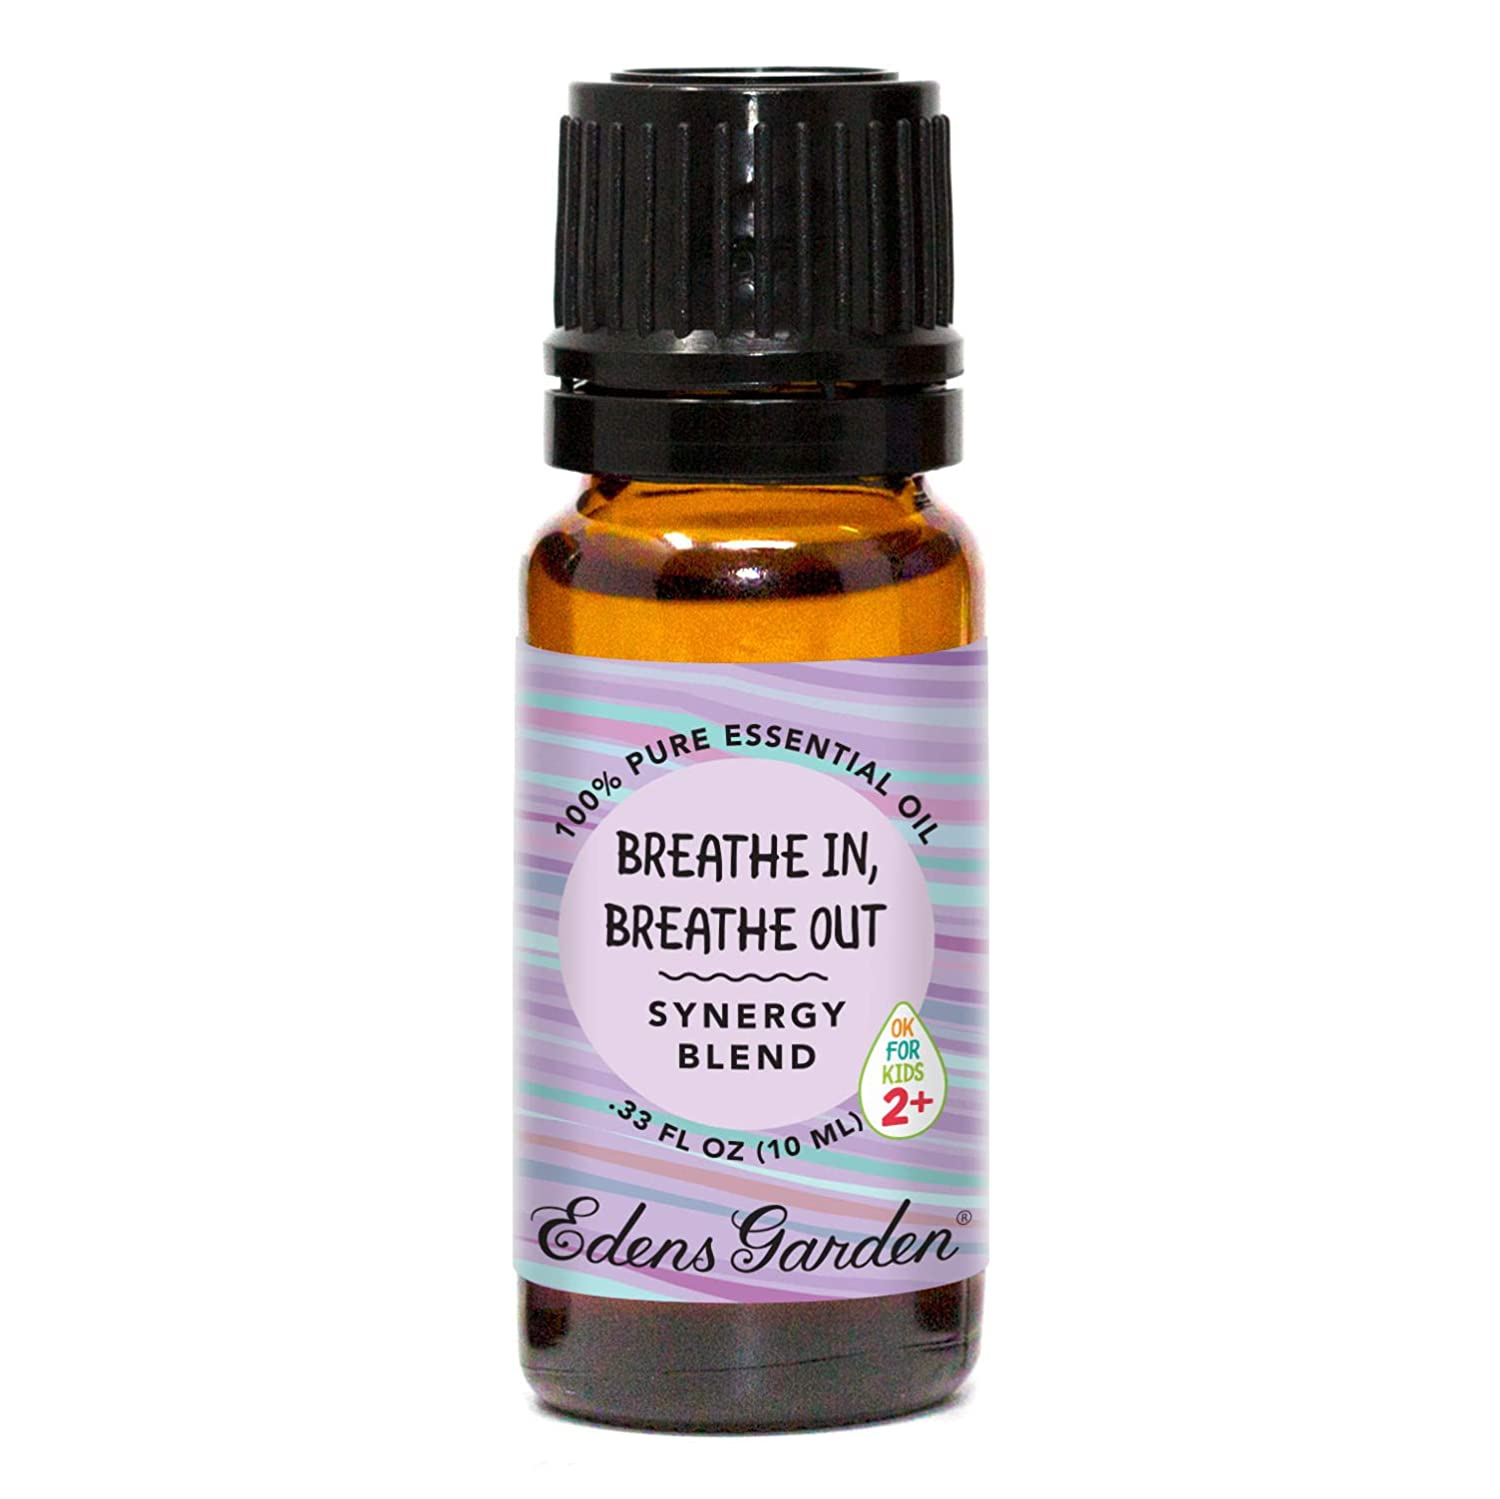 "Edens Garden Breathe In, Breathe Out""OK For Kids"" Essential Oil Synergy Blend, 100% Pure Therapeutic Grade (Child Safe 2+, Allergies & Congestion), 10 ml"